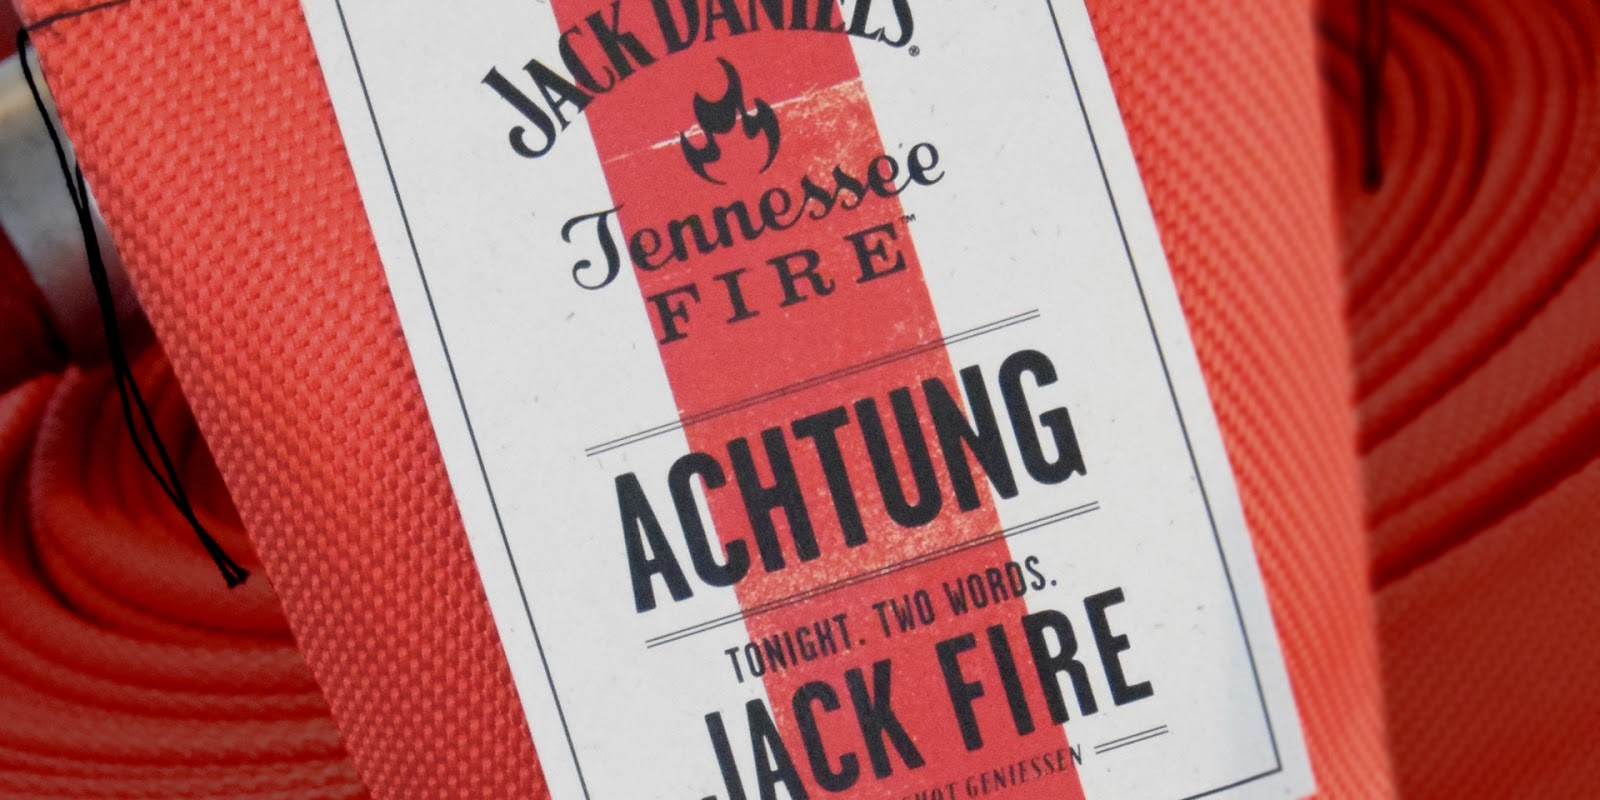 Jack Daniel's Tennessee Fire Limited Edition Fire Hose